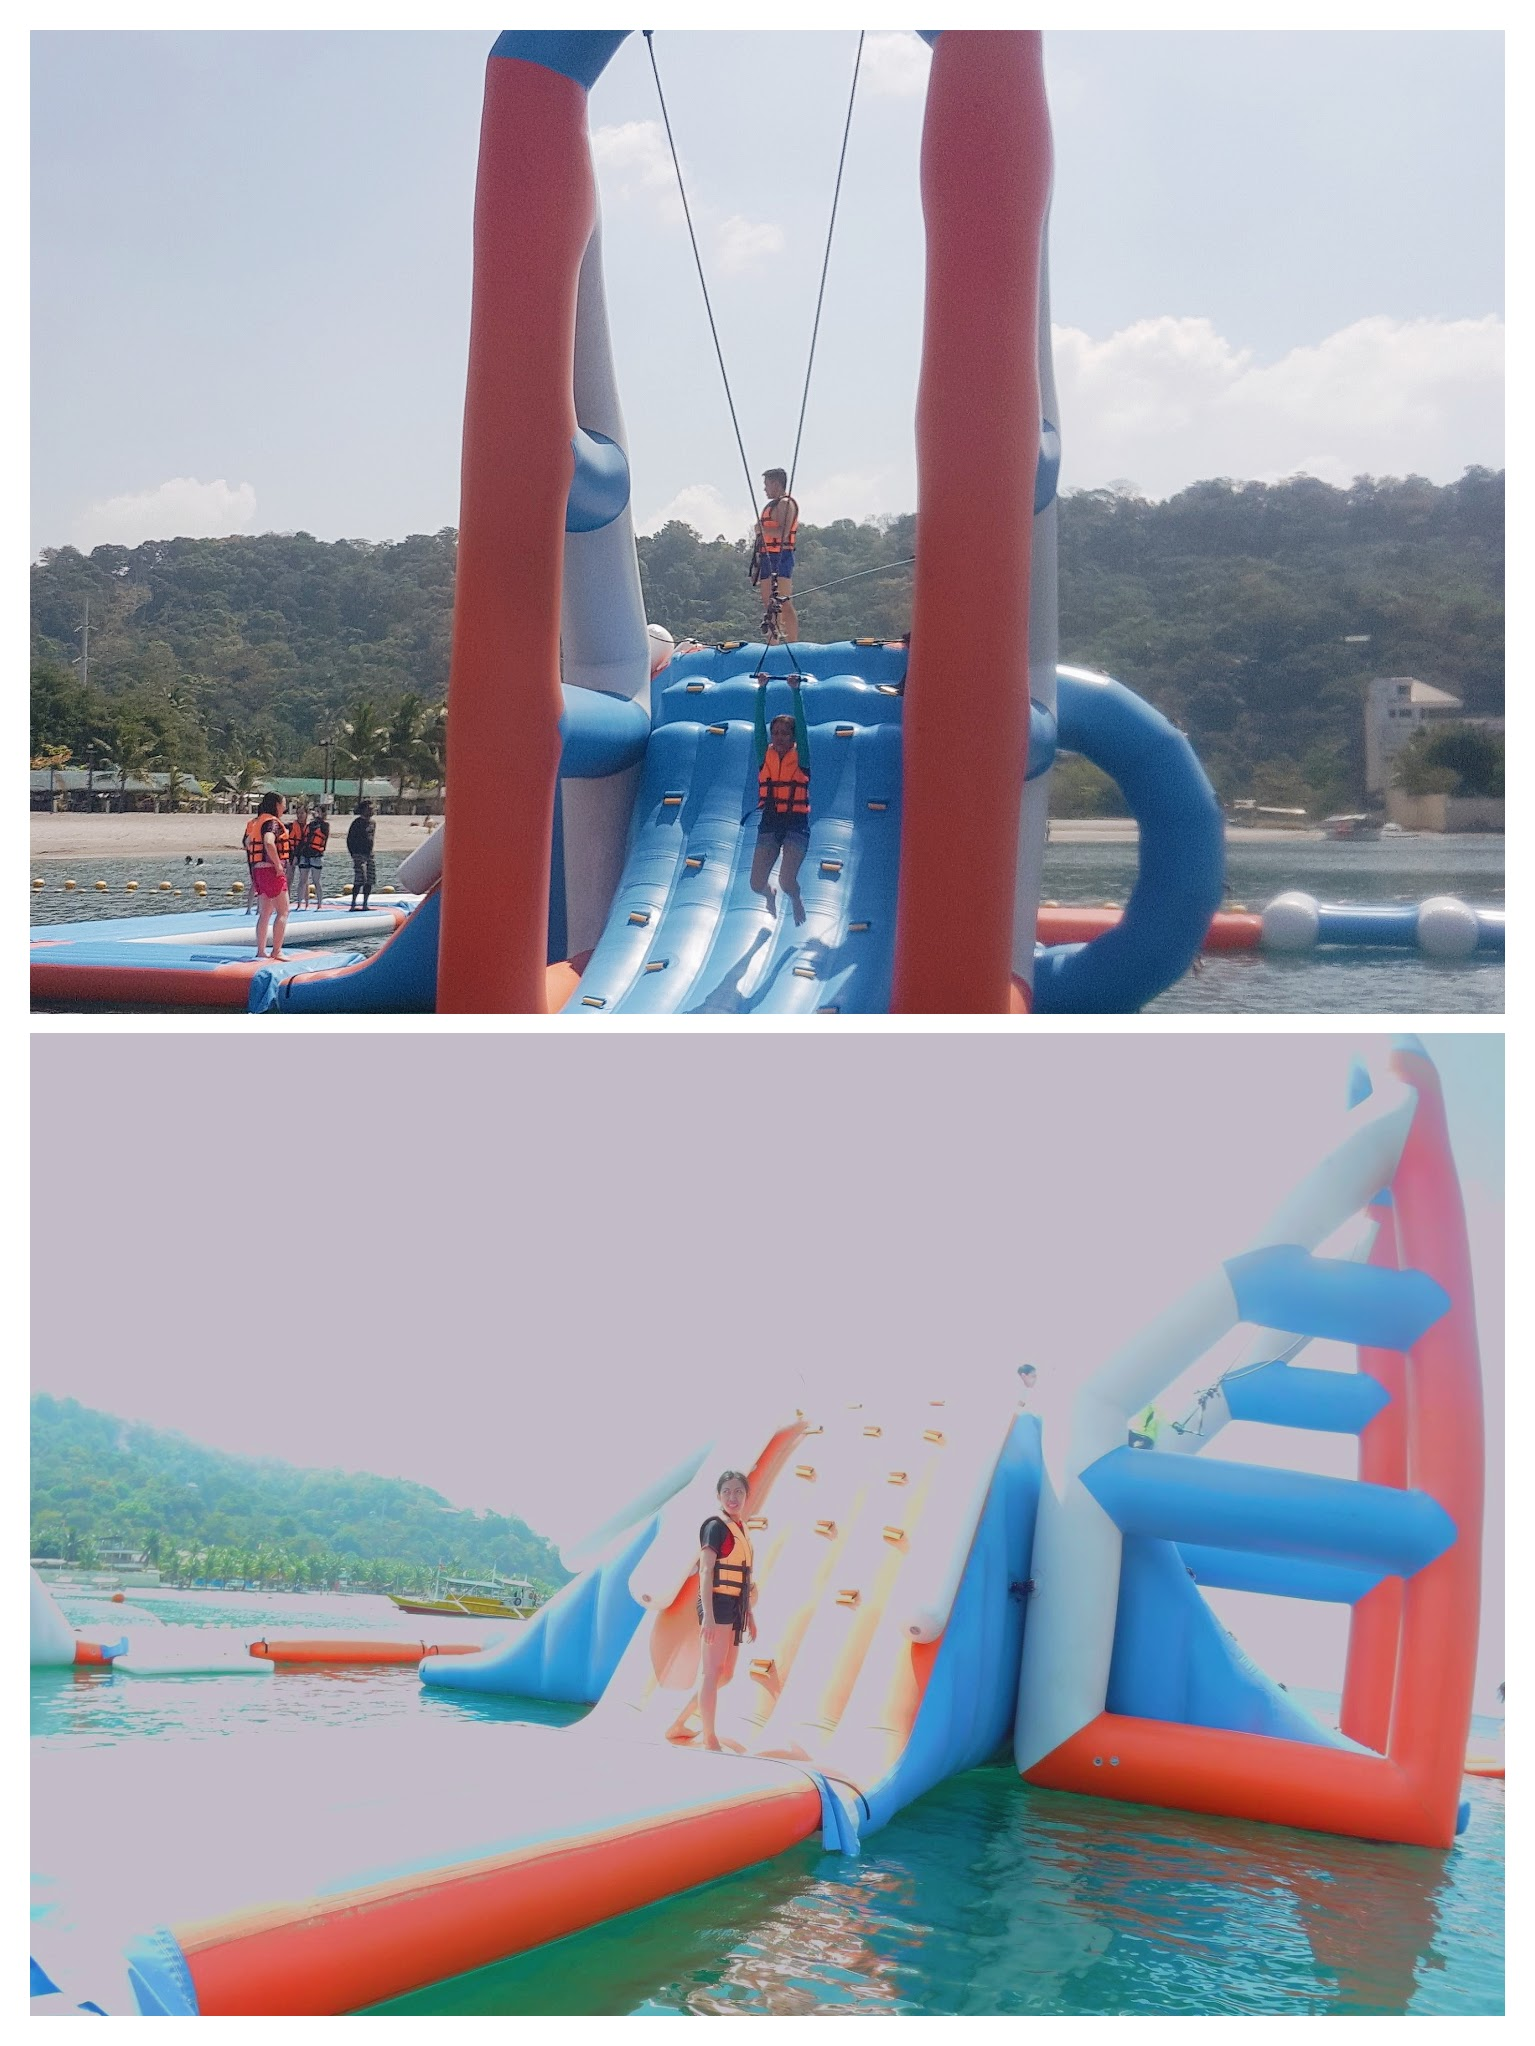 The Biggest Floating Playground in Asia: Inflatable Island in Subic - launchers and obstacles| www.wearejuanderers.com